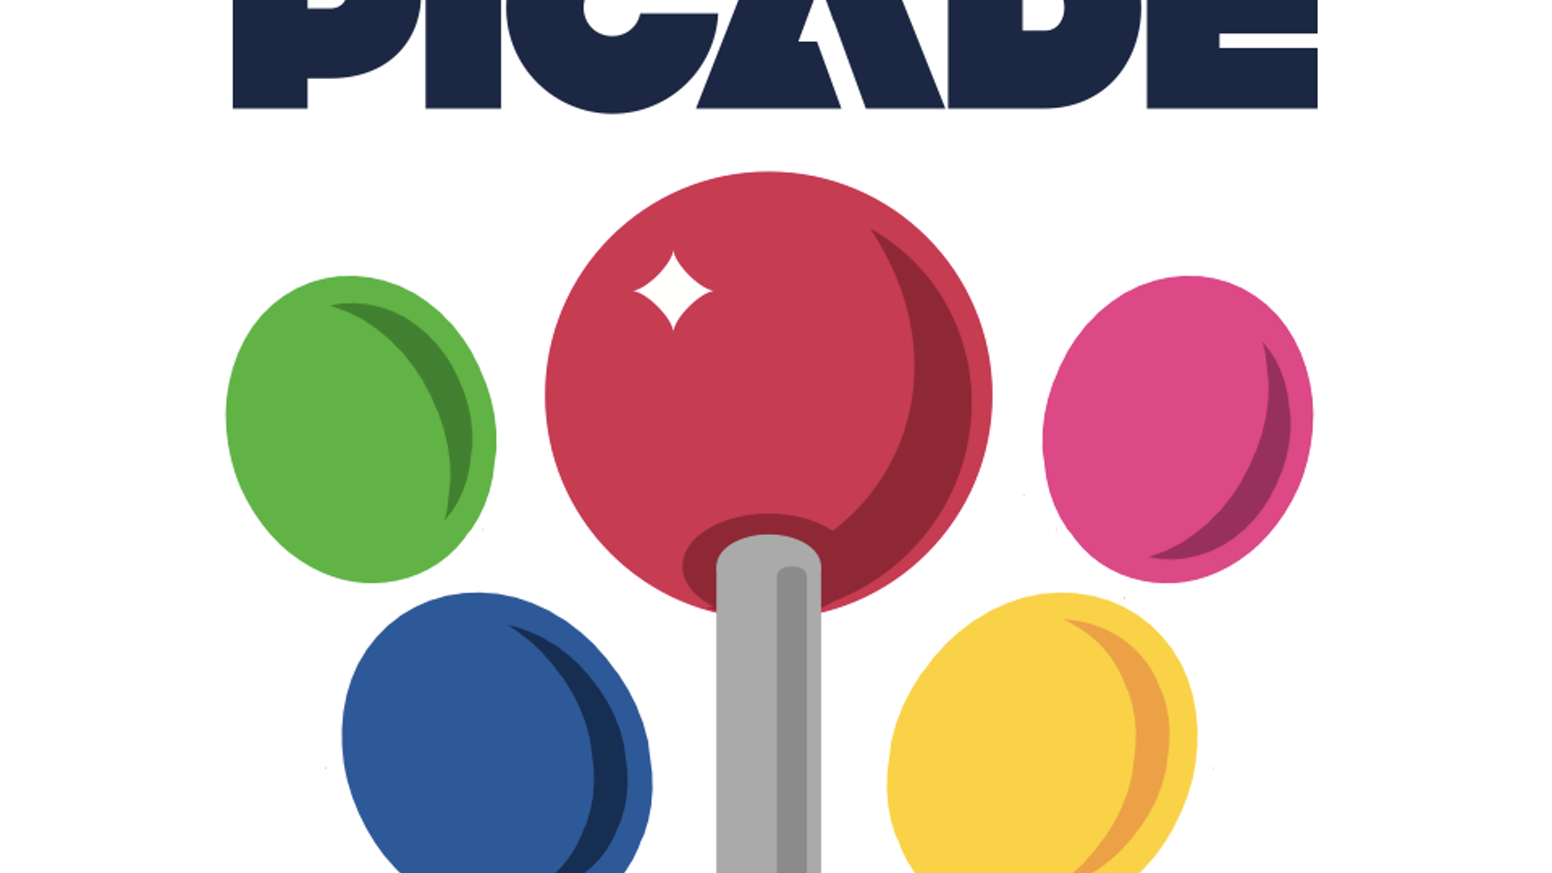 Picade The Arcade Cabinet Kit For Your Mini Computer By Pimoroni Circuit Classics Printed Board Kits Based On Classic Projects